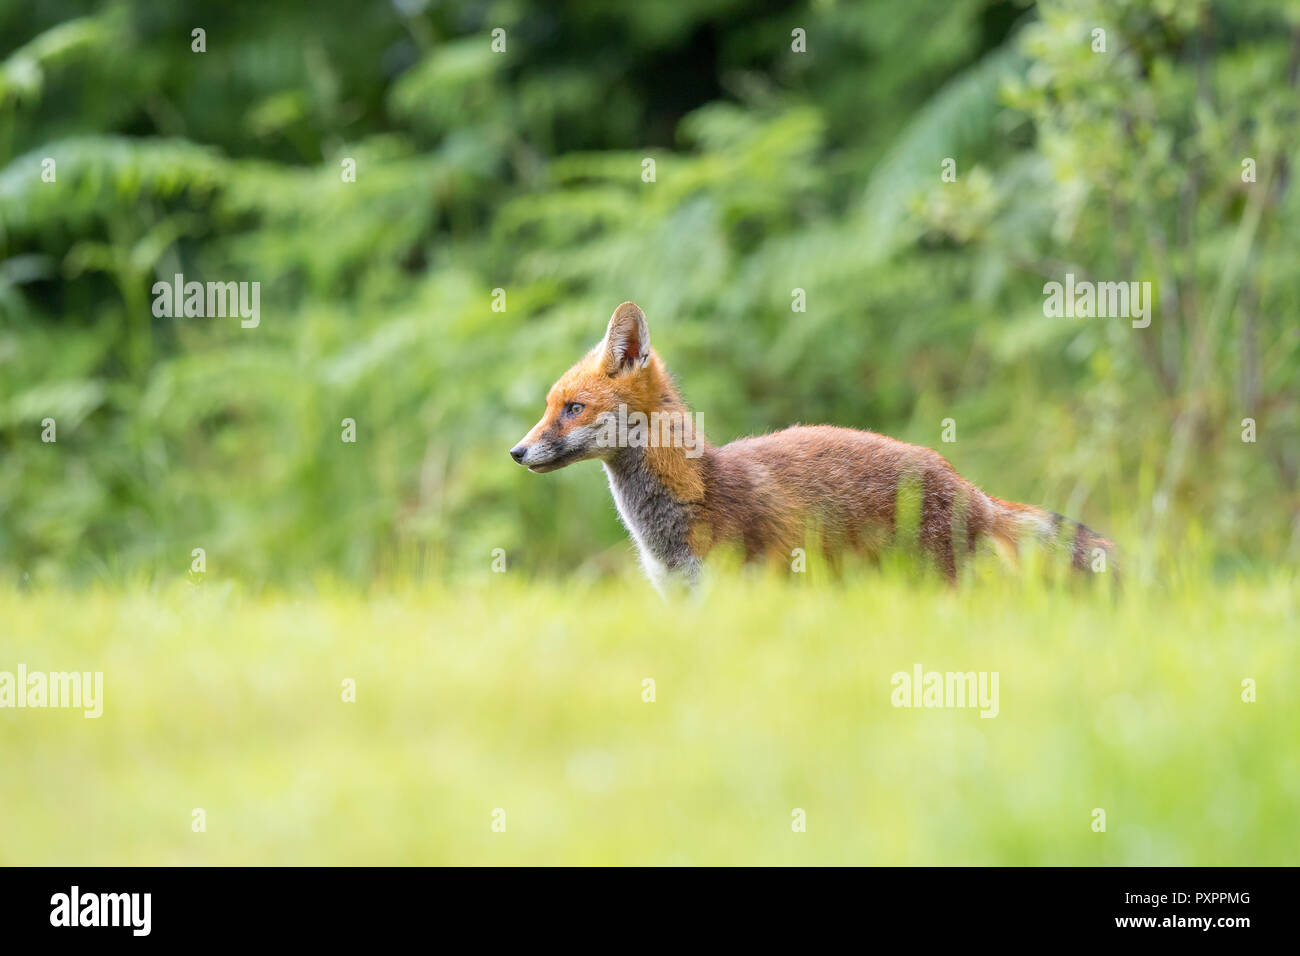 Detailed, close-up side view of young British red fox (Vulpes vulpes) in the wild, standing alone in long grass, with natural UK woodland background. - Stock Image